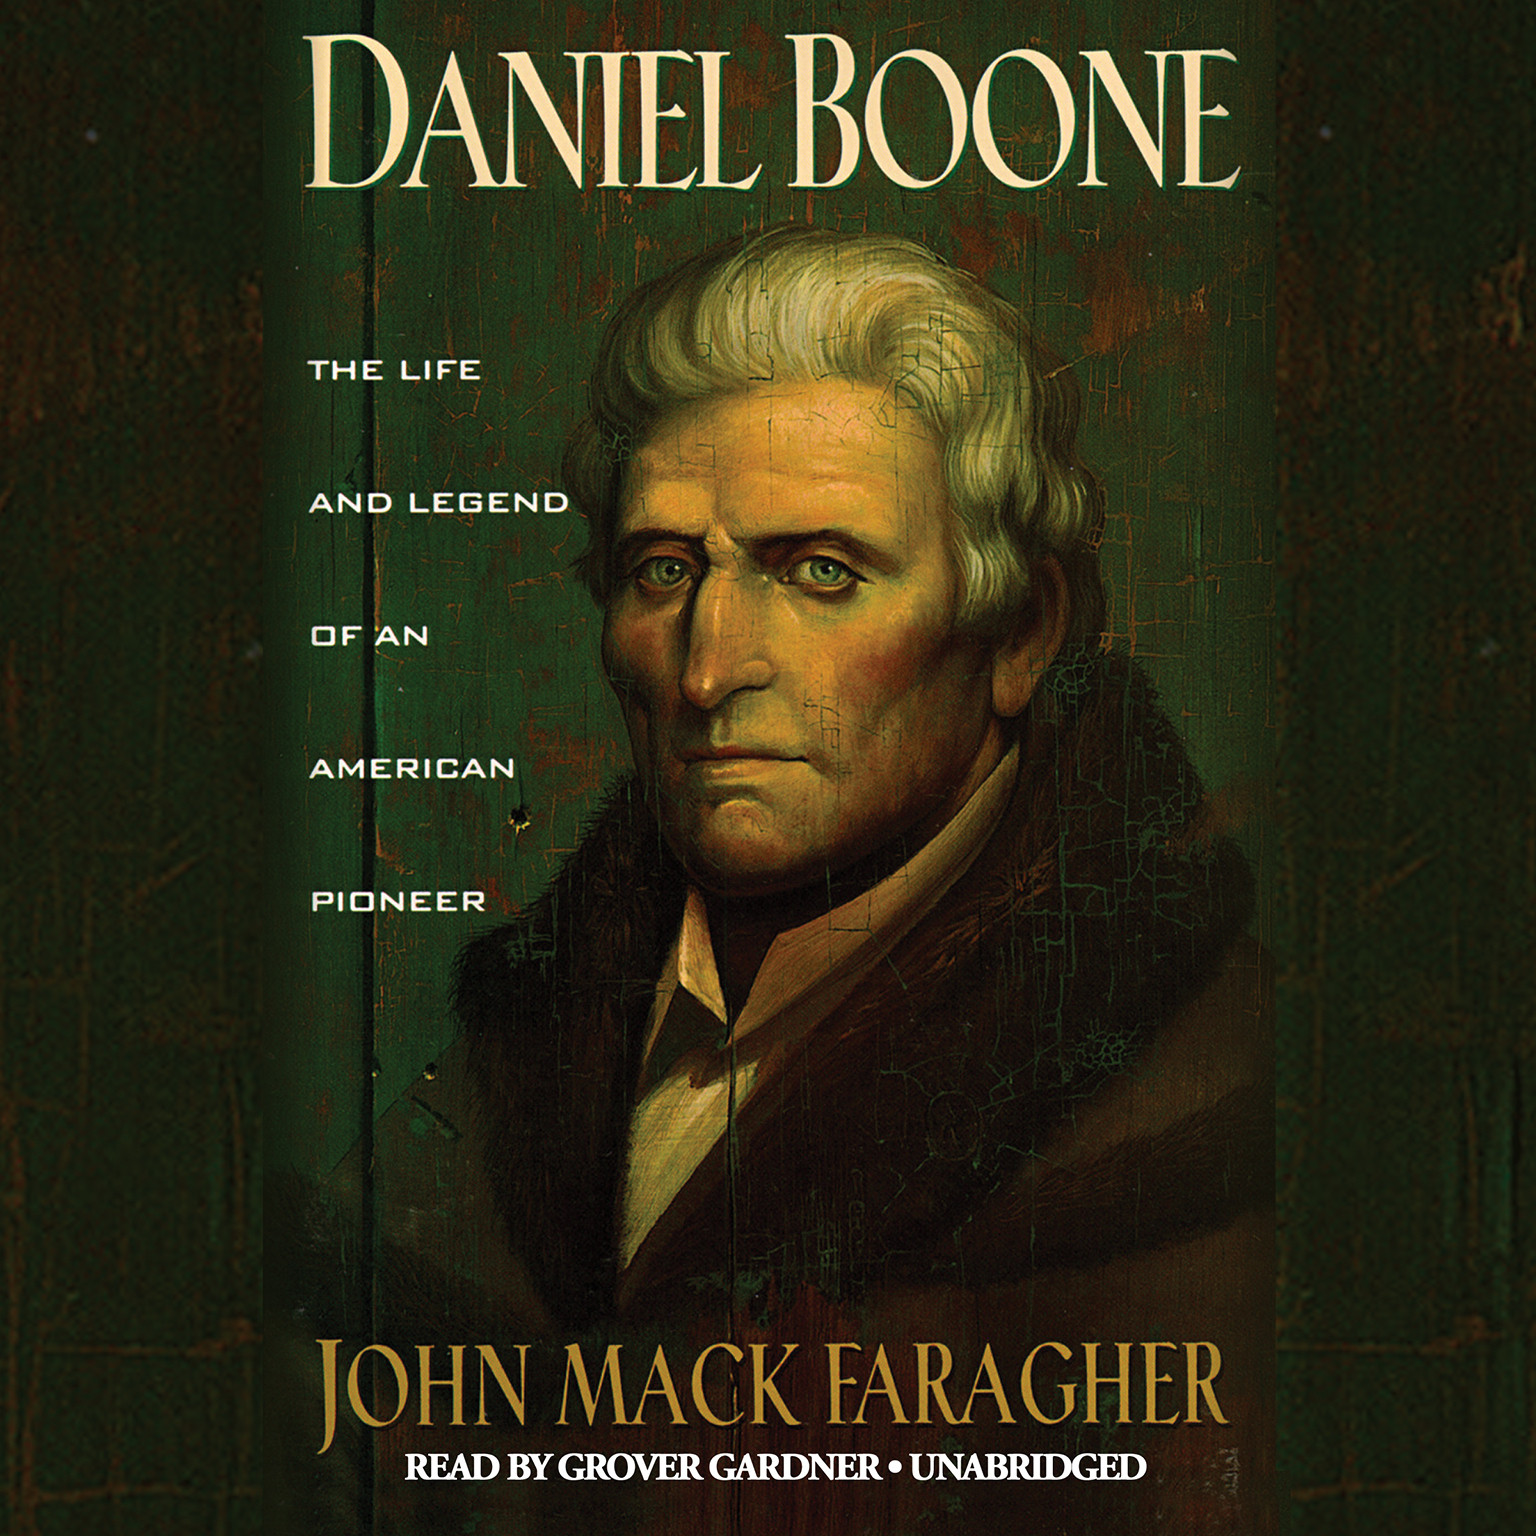 Printable Daniel Boone: The Life and Legend of an American Pioneer Audiobook Cover Art